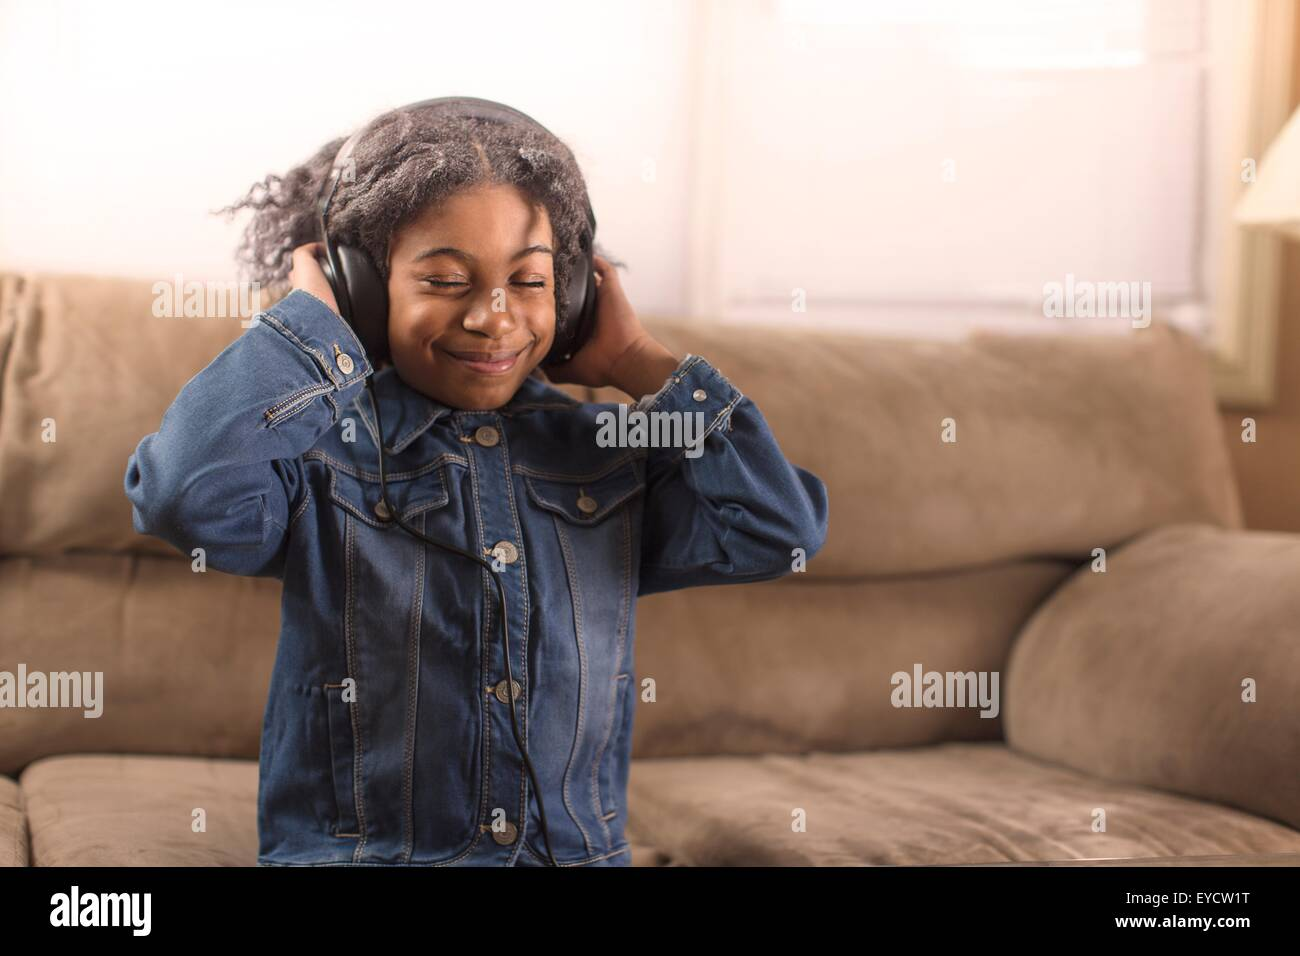 Girl with eyes closed listening to headphone music on sofa Stock Photo